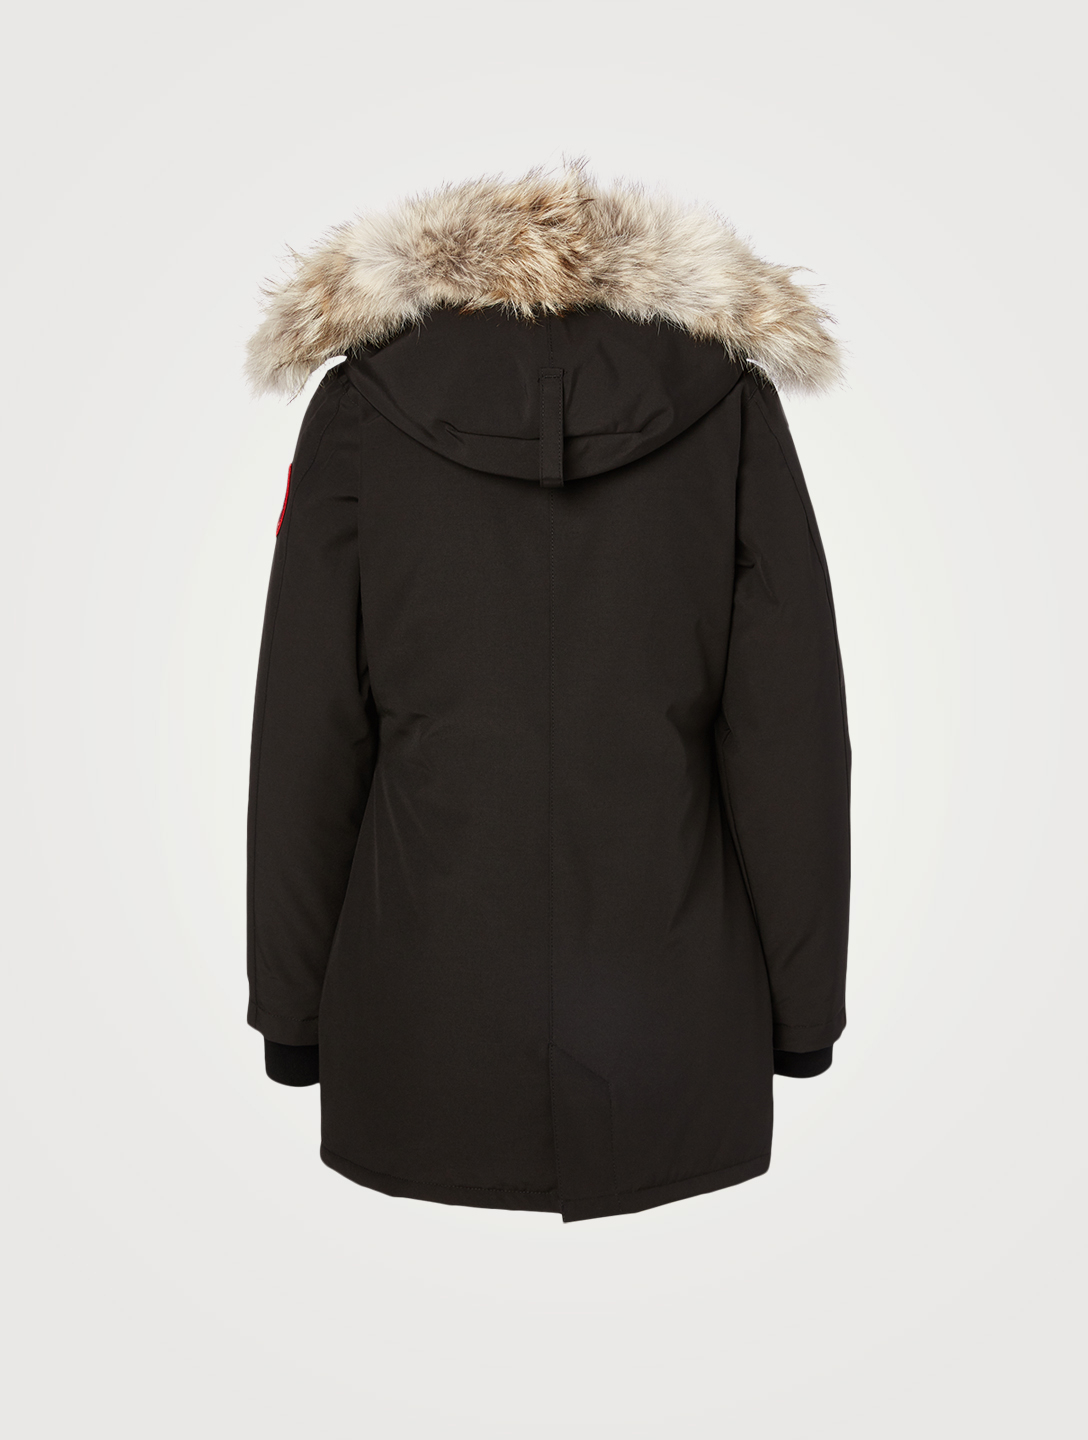 CANADA GOOSE Victoria Down Parka With Fur Hood - Fusion Fit Women's Black